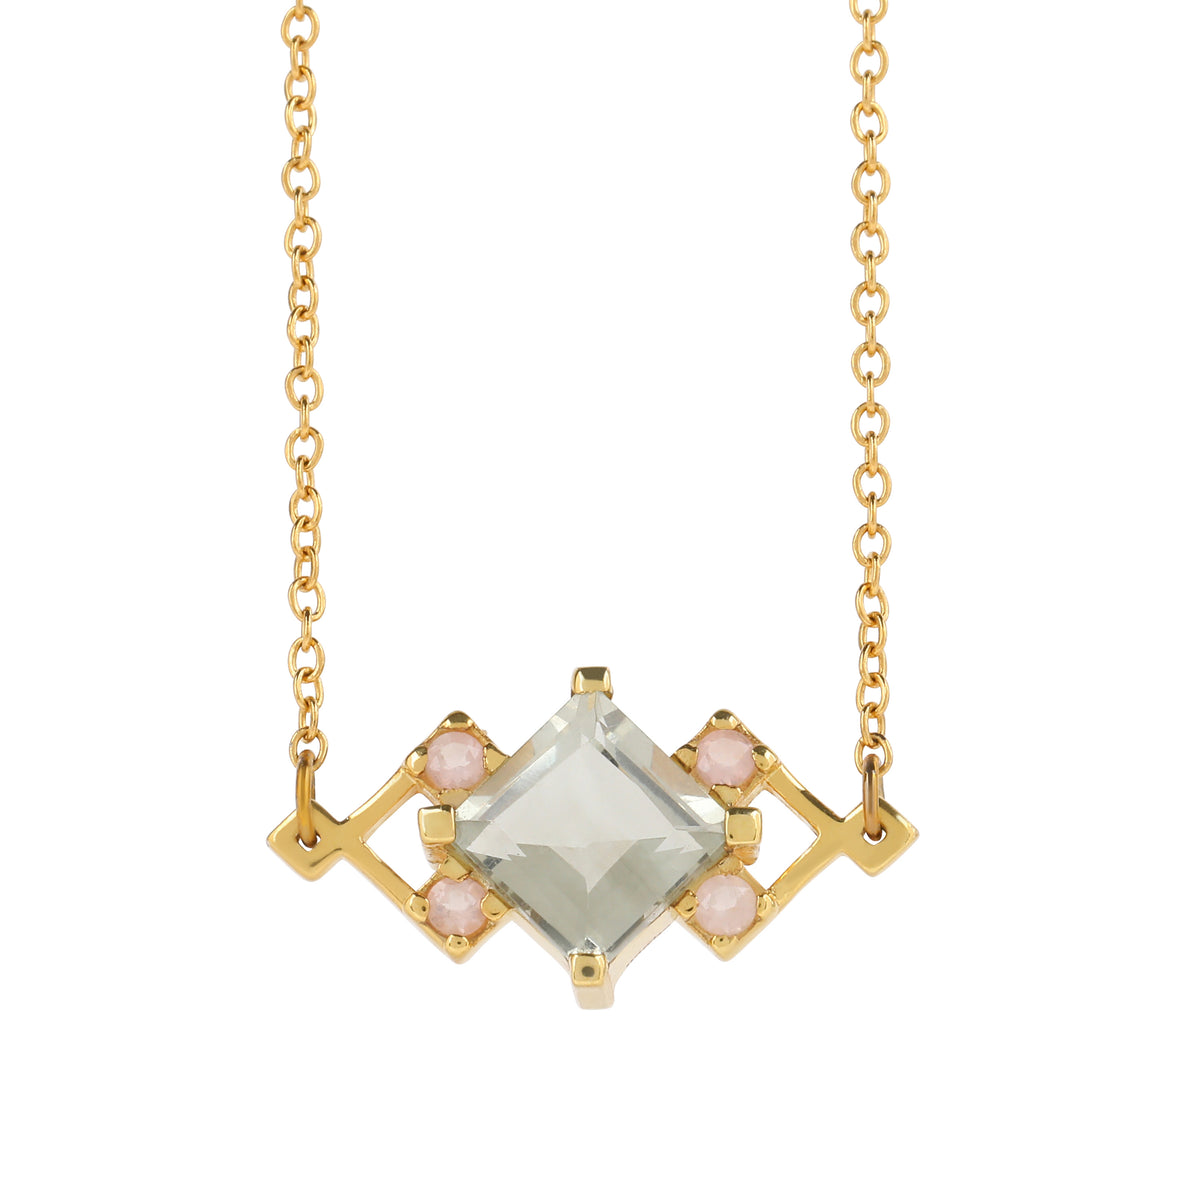 Reconceptions Petite Necklace - Gold - Green